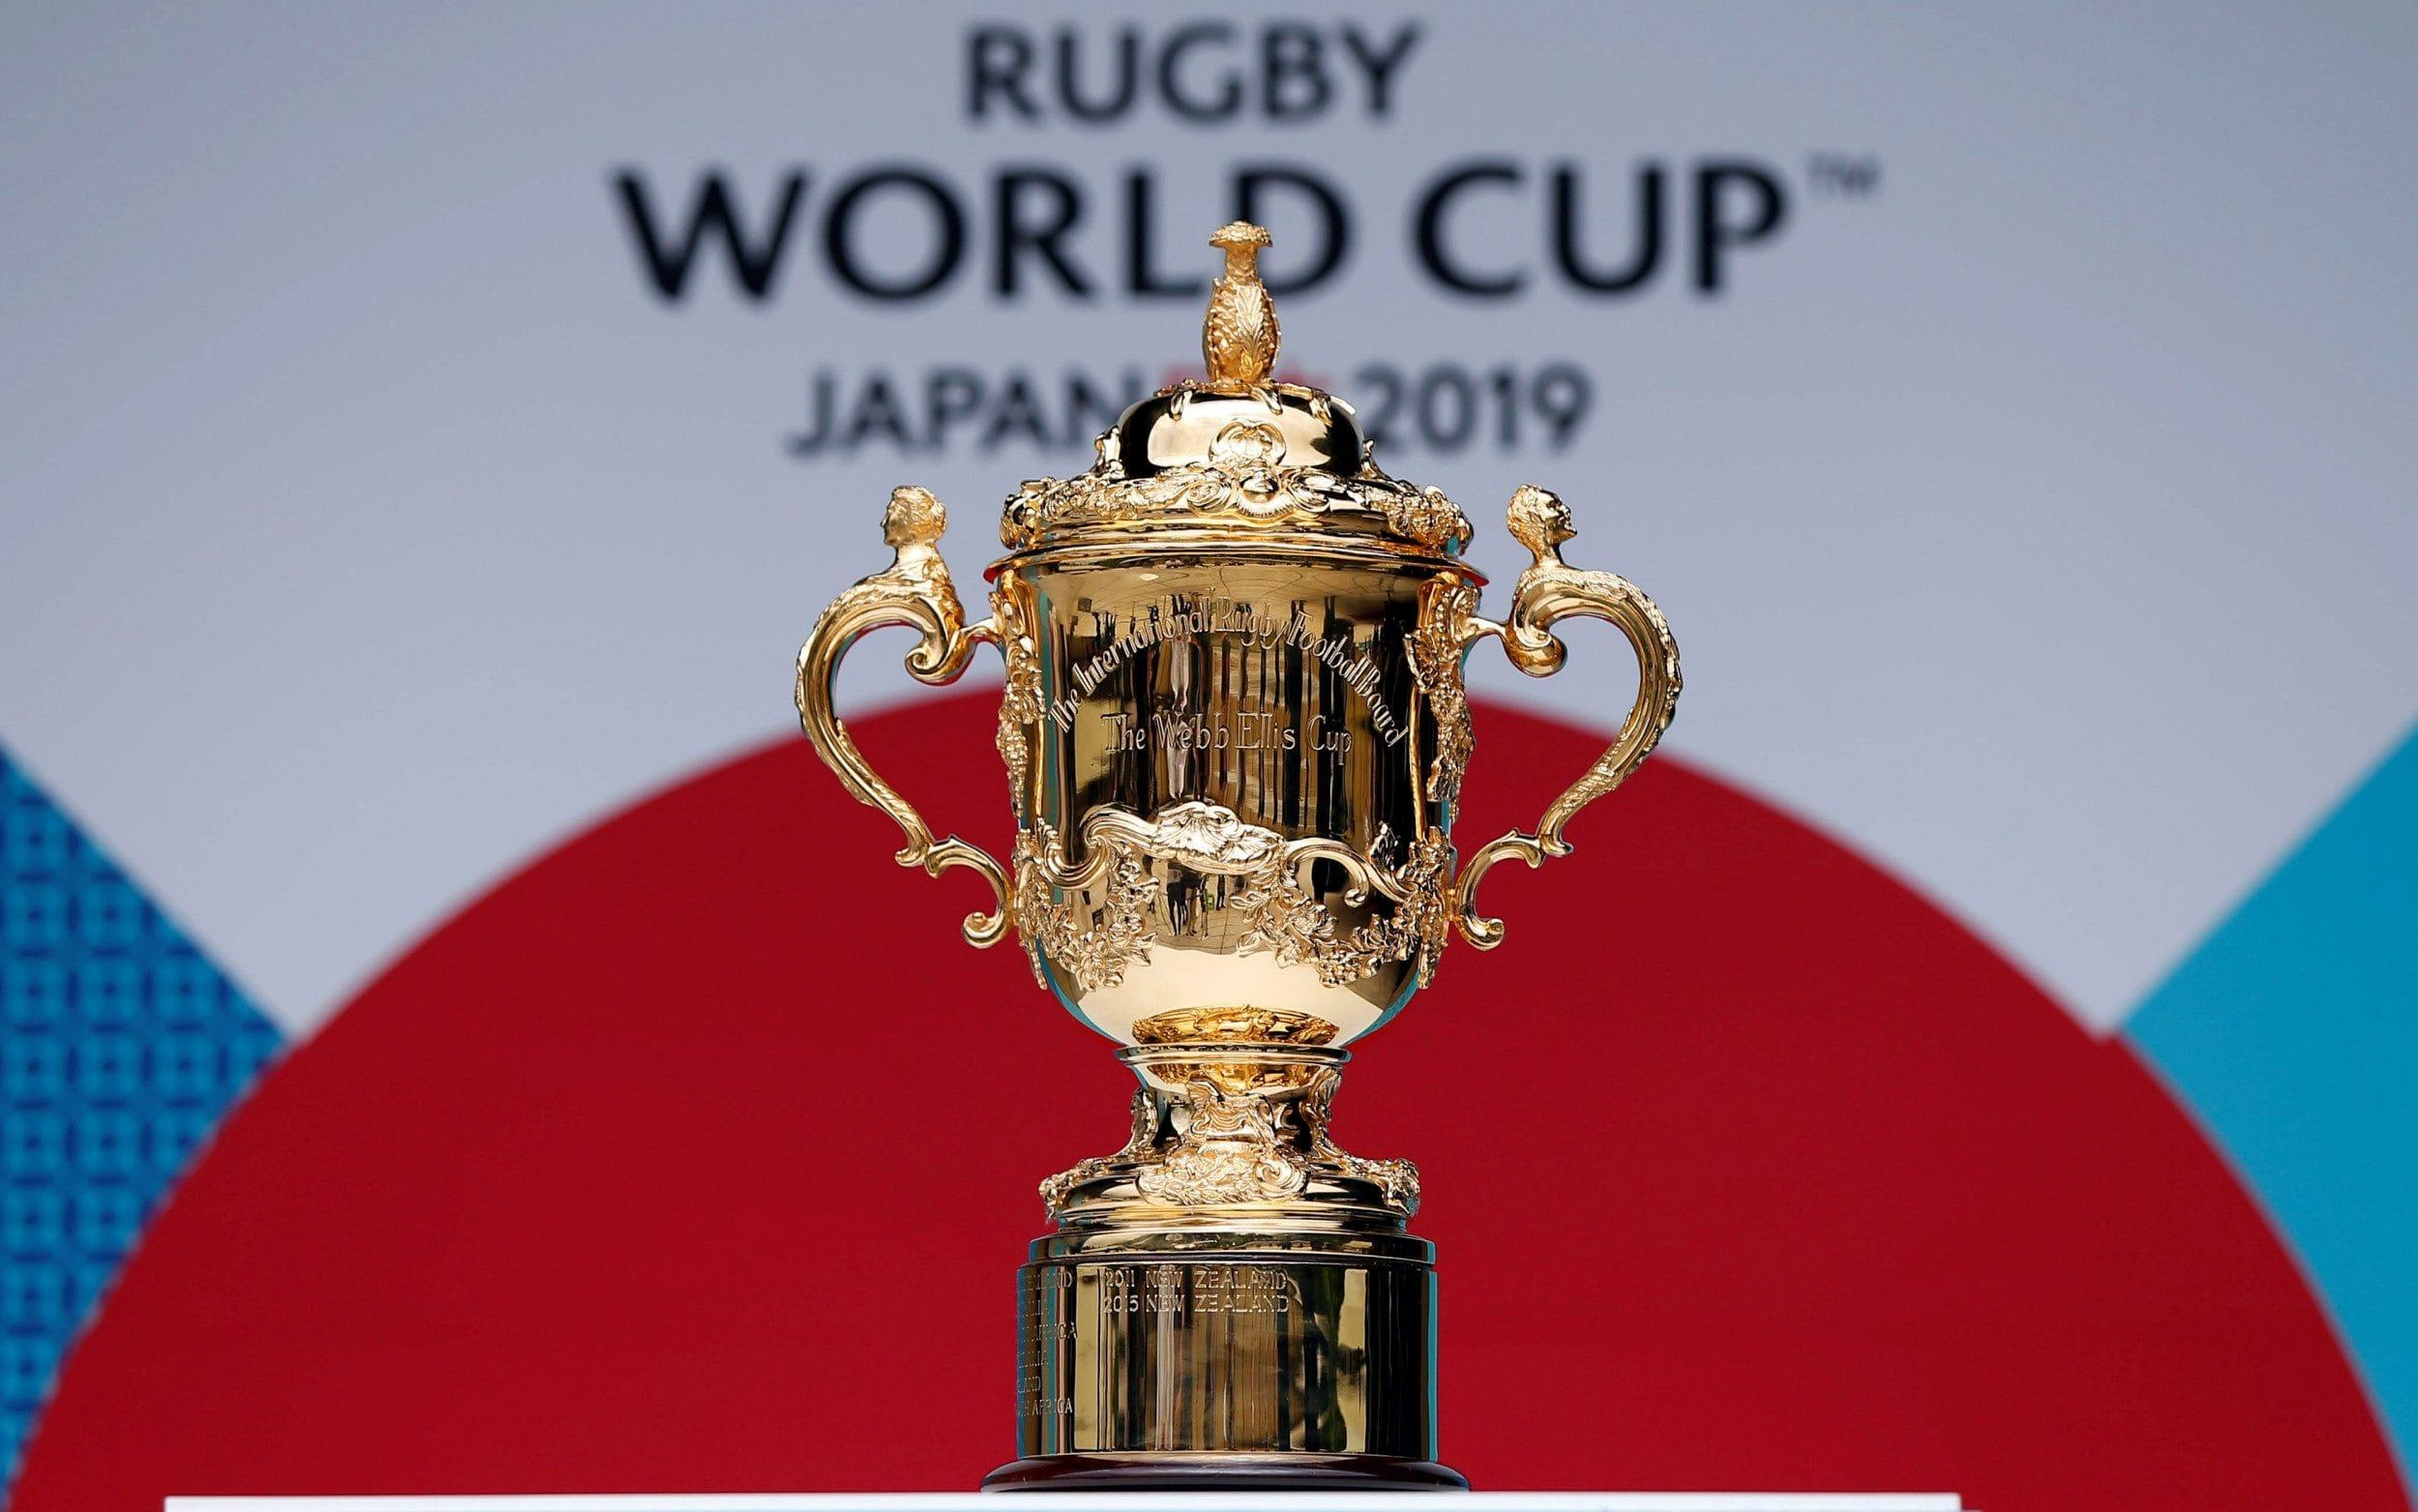 rugby world cup 2019 - HD 2499×1563